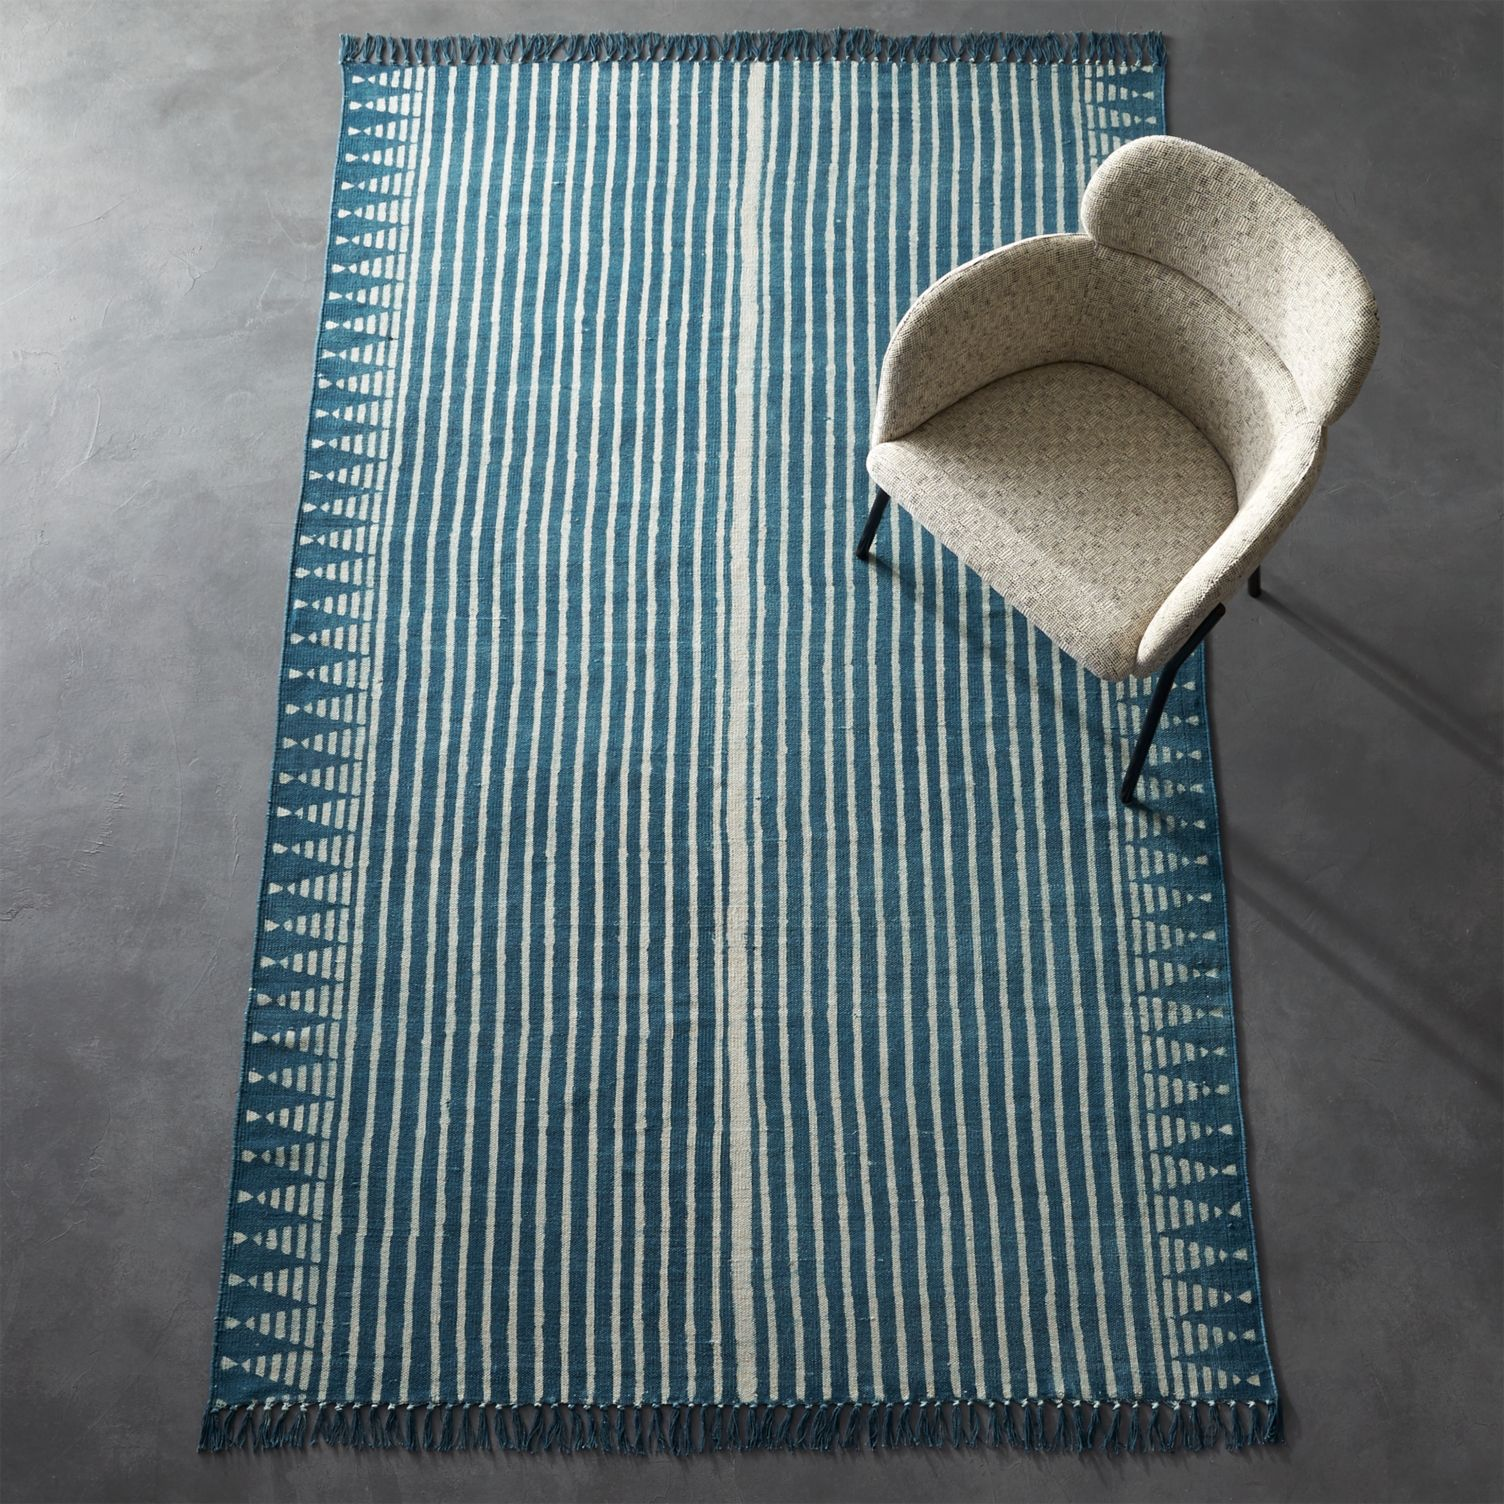 Indigo striped rug